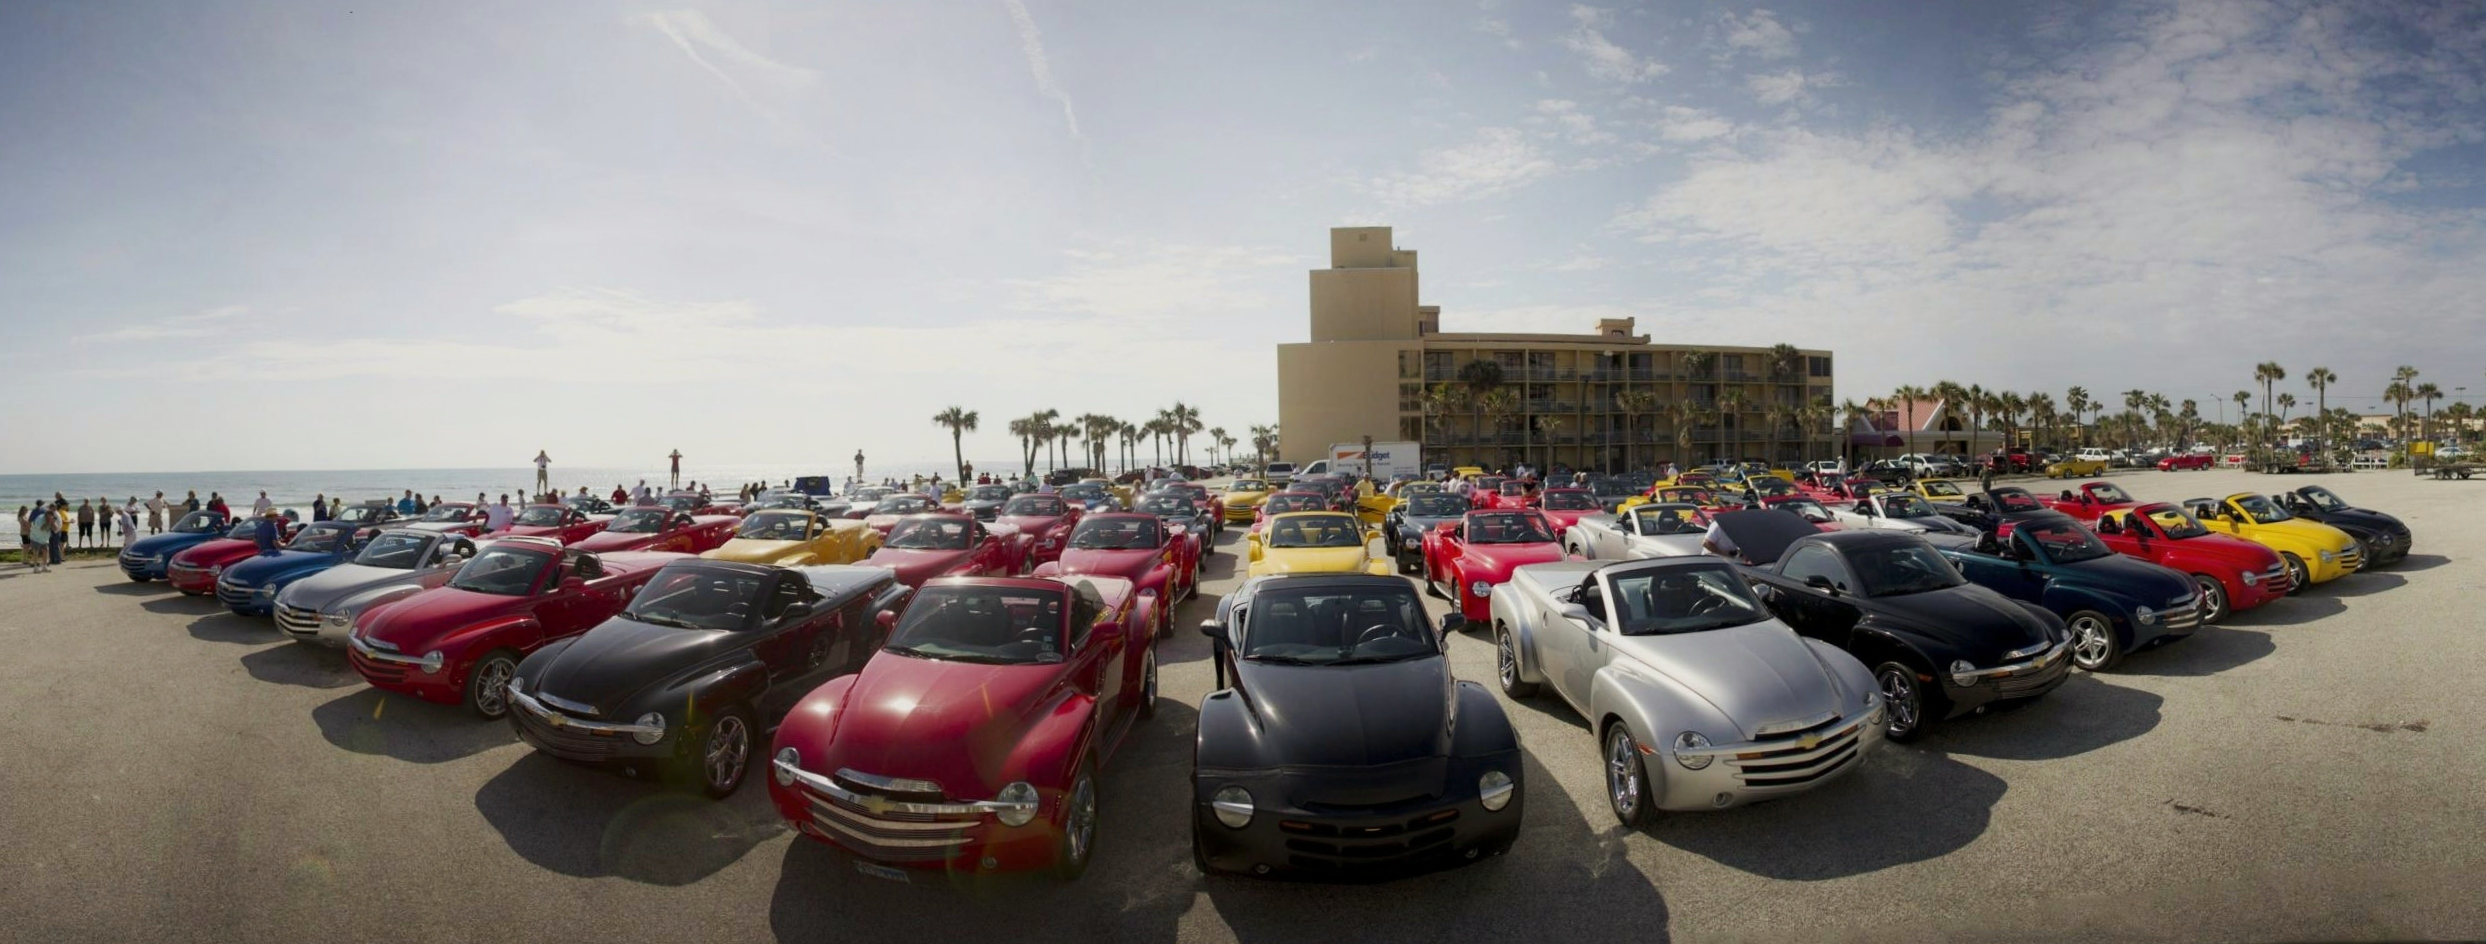 5th Annual Florida SSR RALLY, March 8, 9 &10, 2013-ssr_panorama-1.jpg